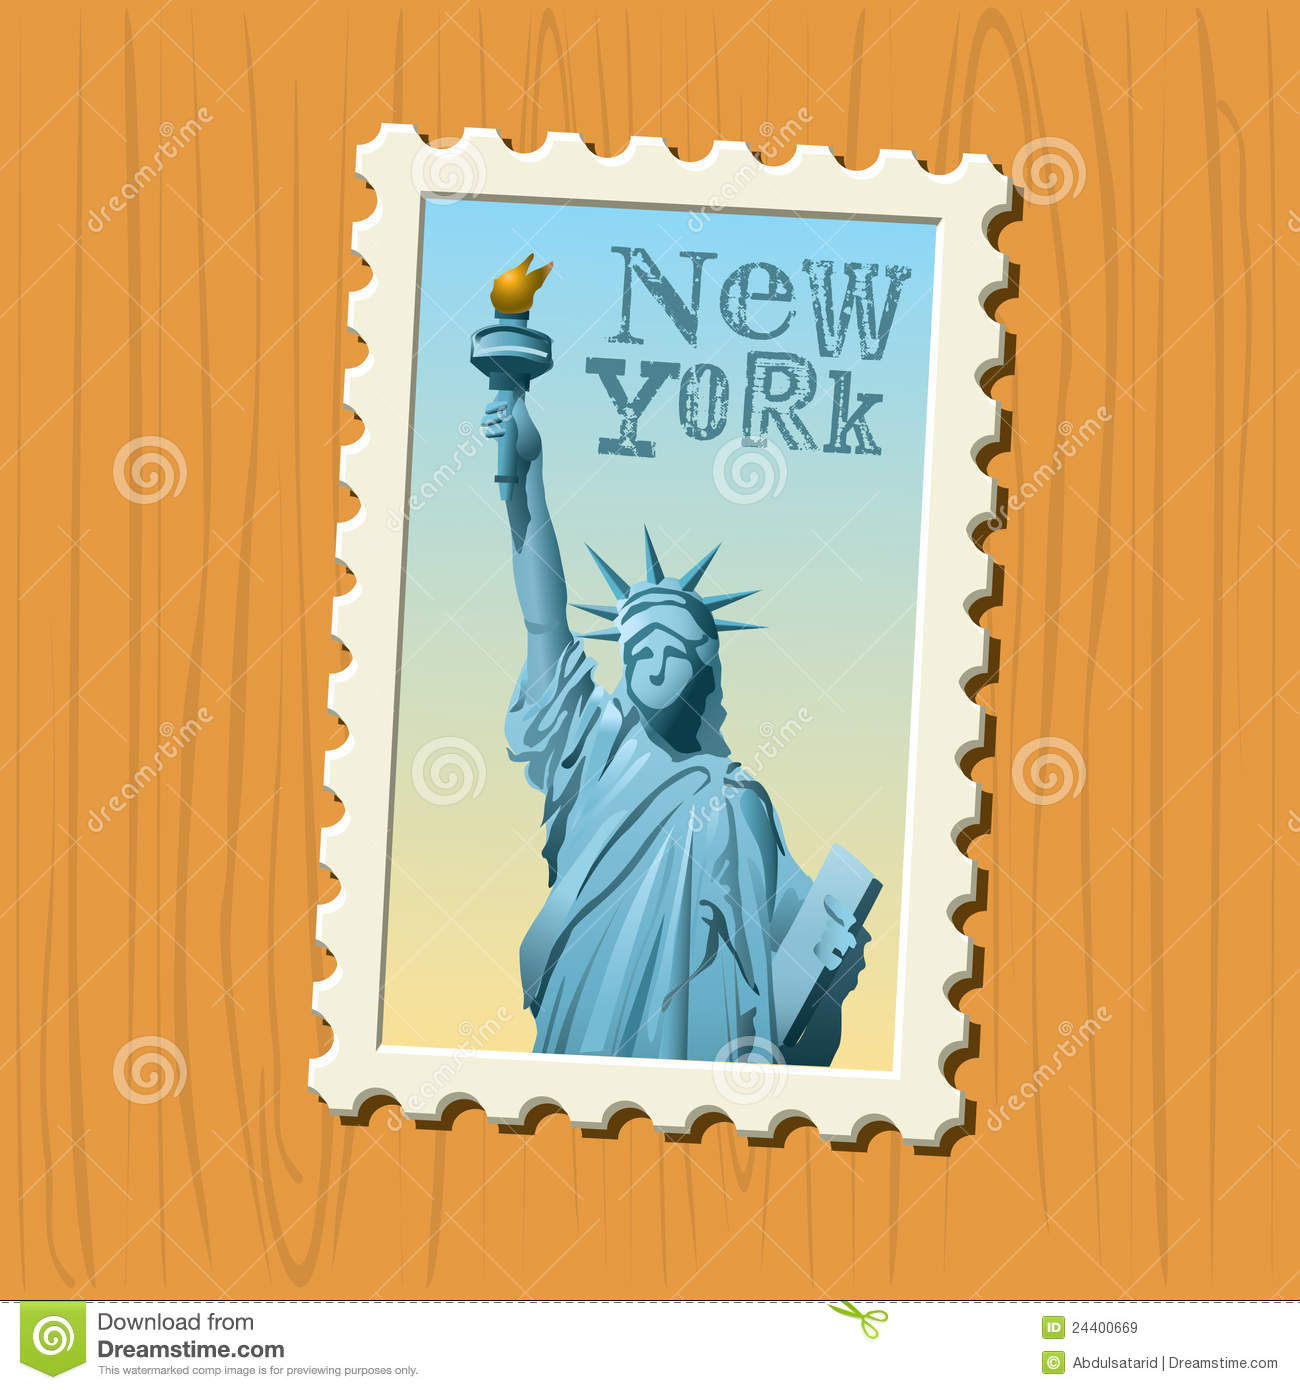 New York State Architect Stamp Of New York Postage Stamp Stock Vector Image Of Landmark